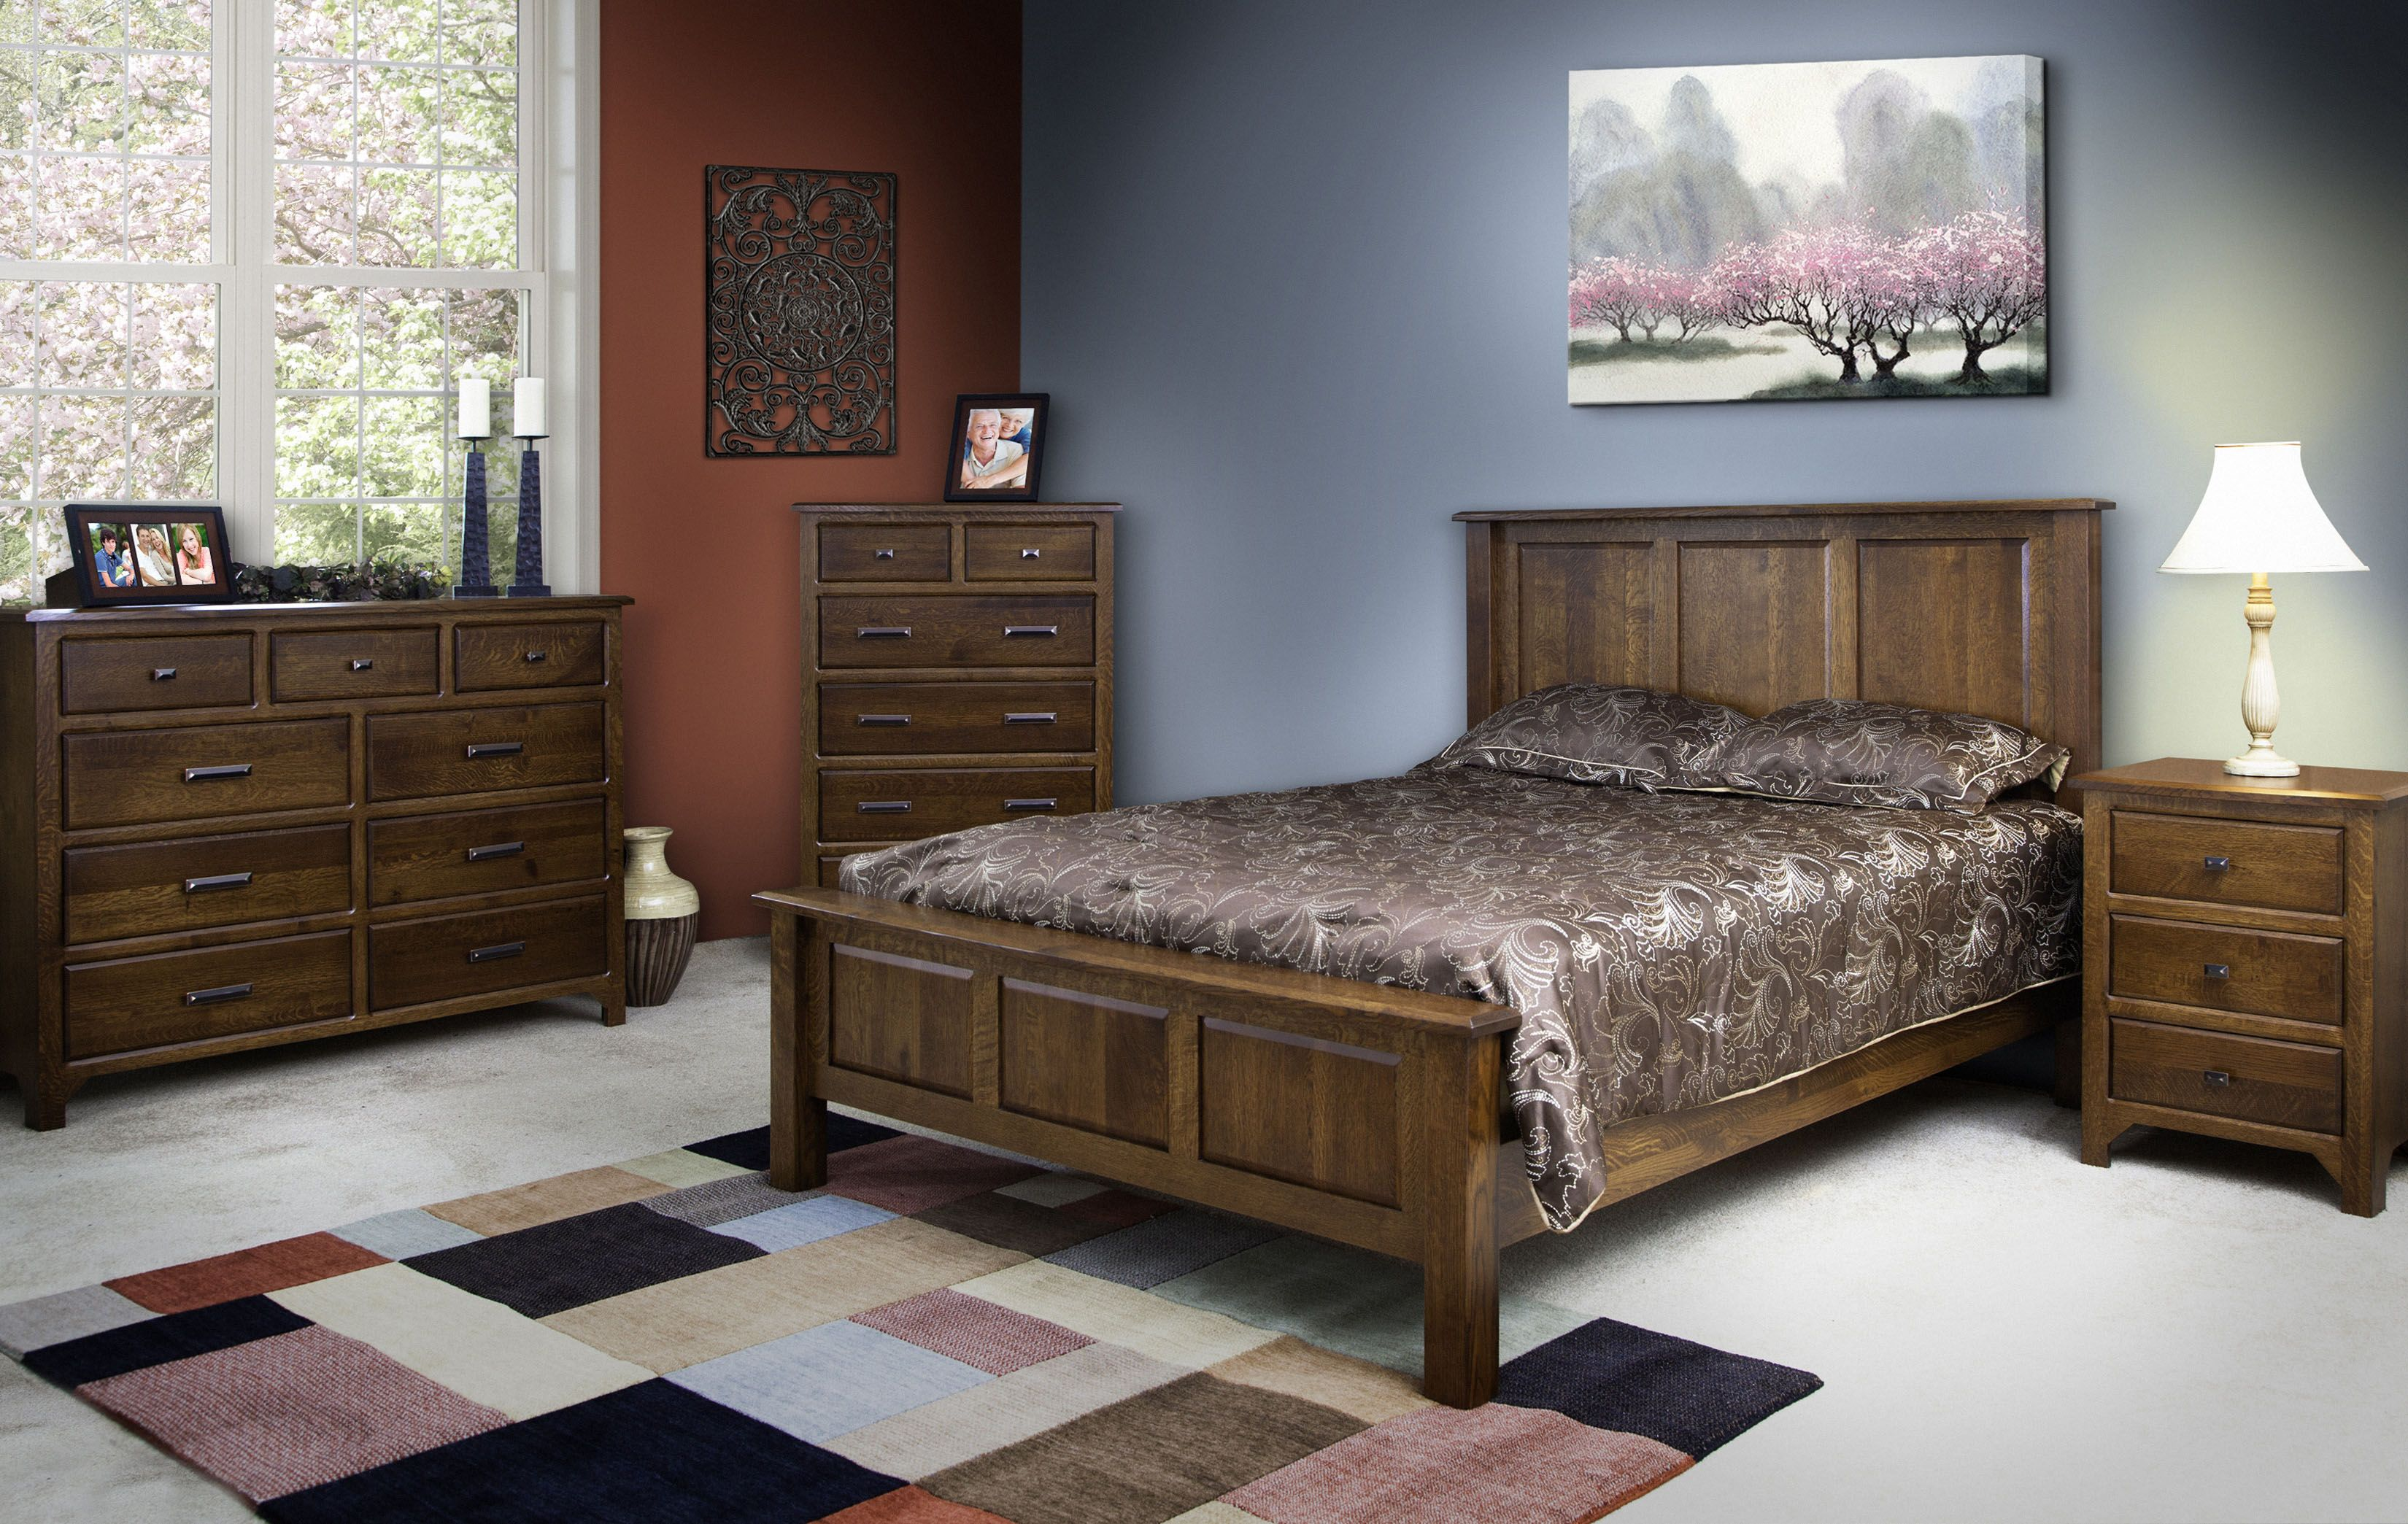 Our Mission Hills Vintage Bed Is A Testament To Genuine Amish Woodworking.  All Beds Are Handcrafted From Solid Hardwood In Your Selected Wood Species.